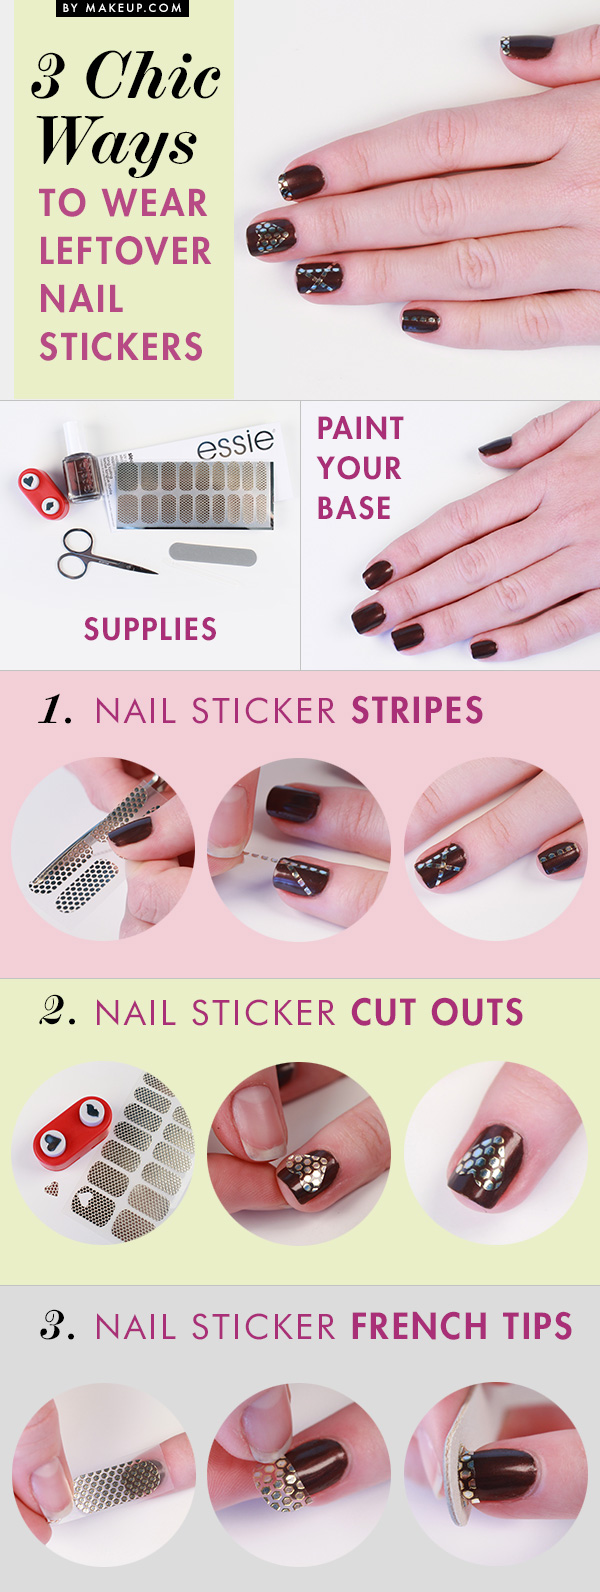 3_chic_ways_to_wear_leftover_nail_stickers